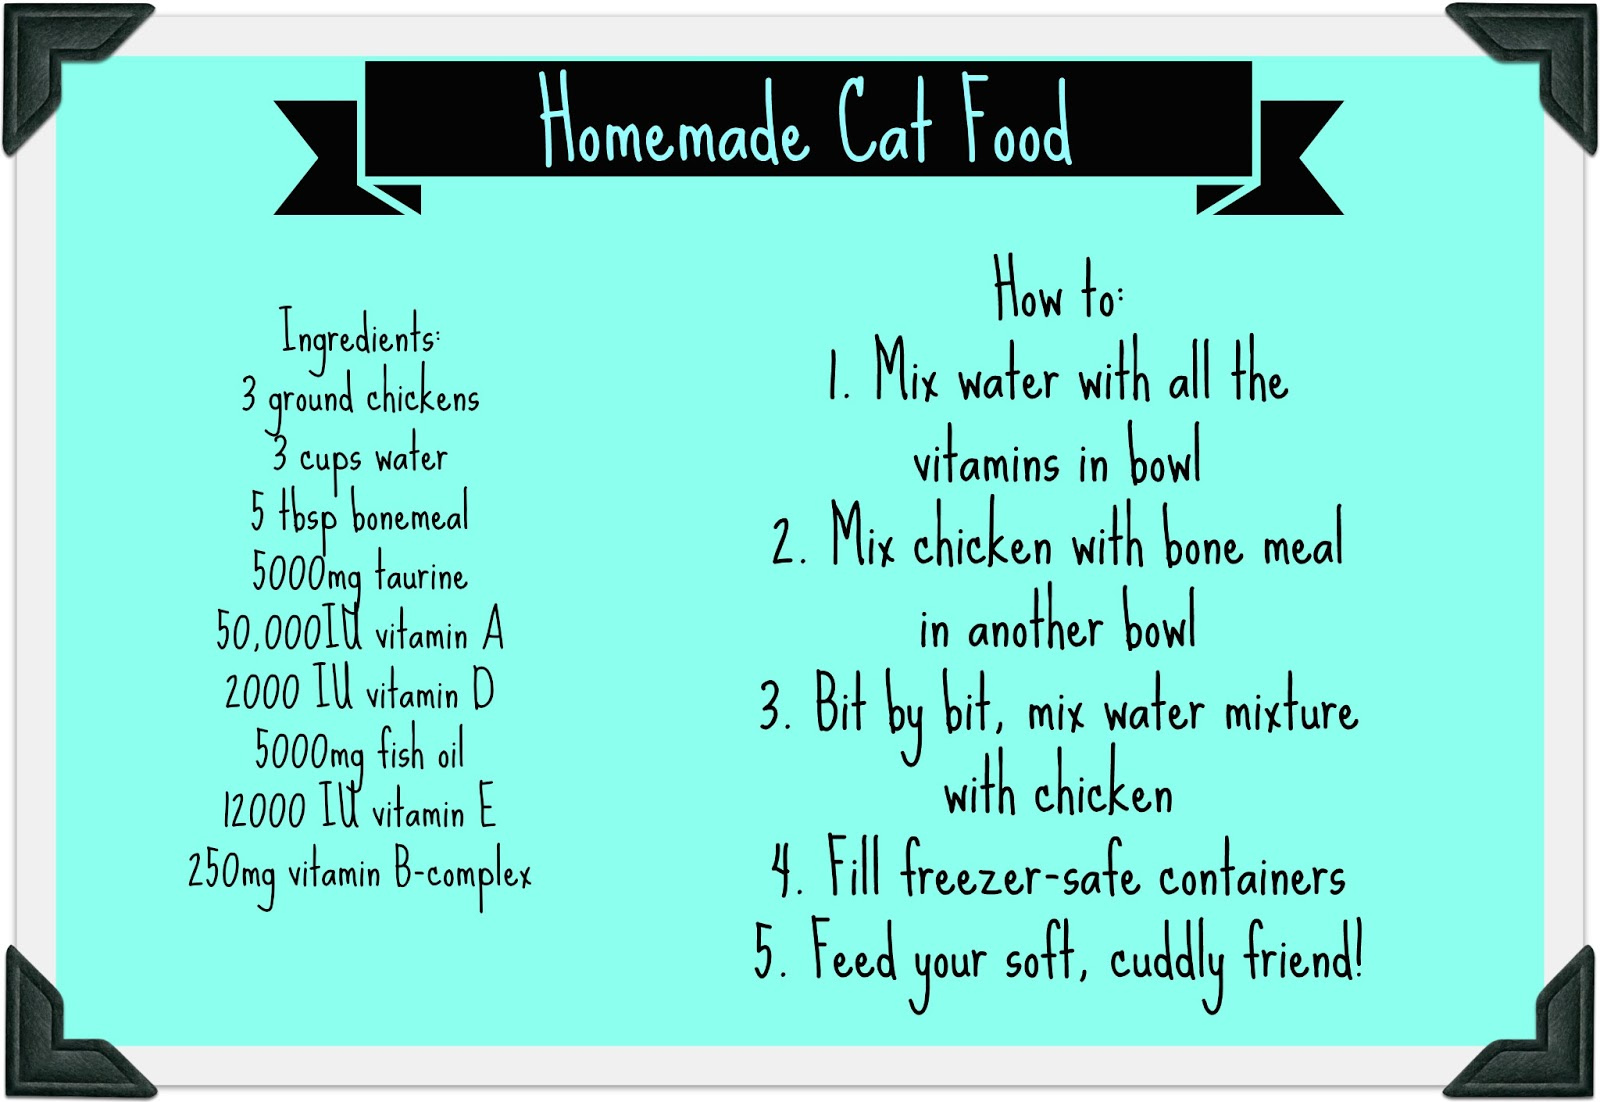 Affordable Homemade Cat Food